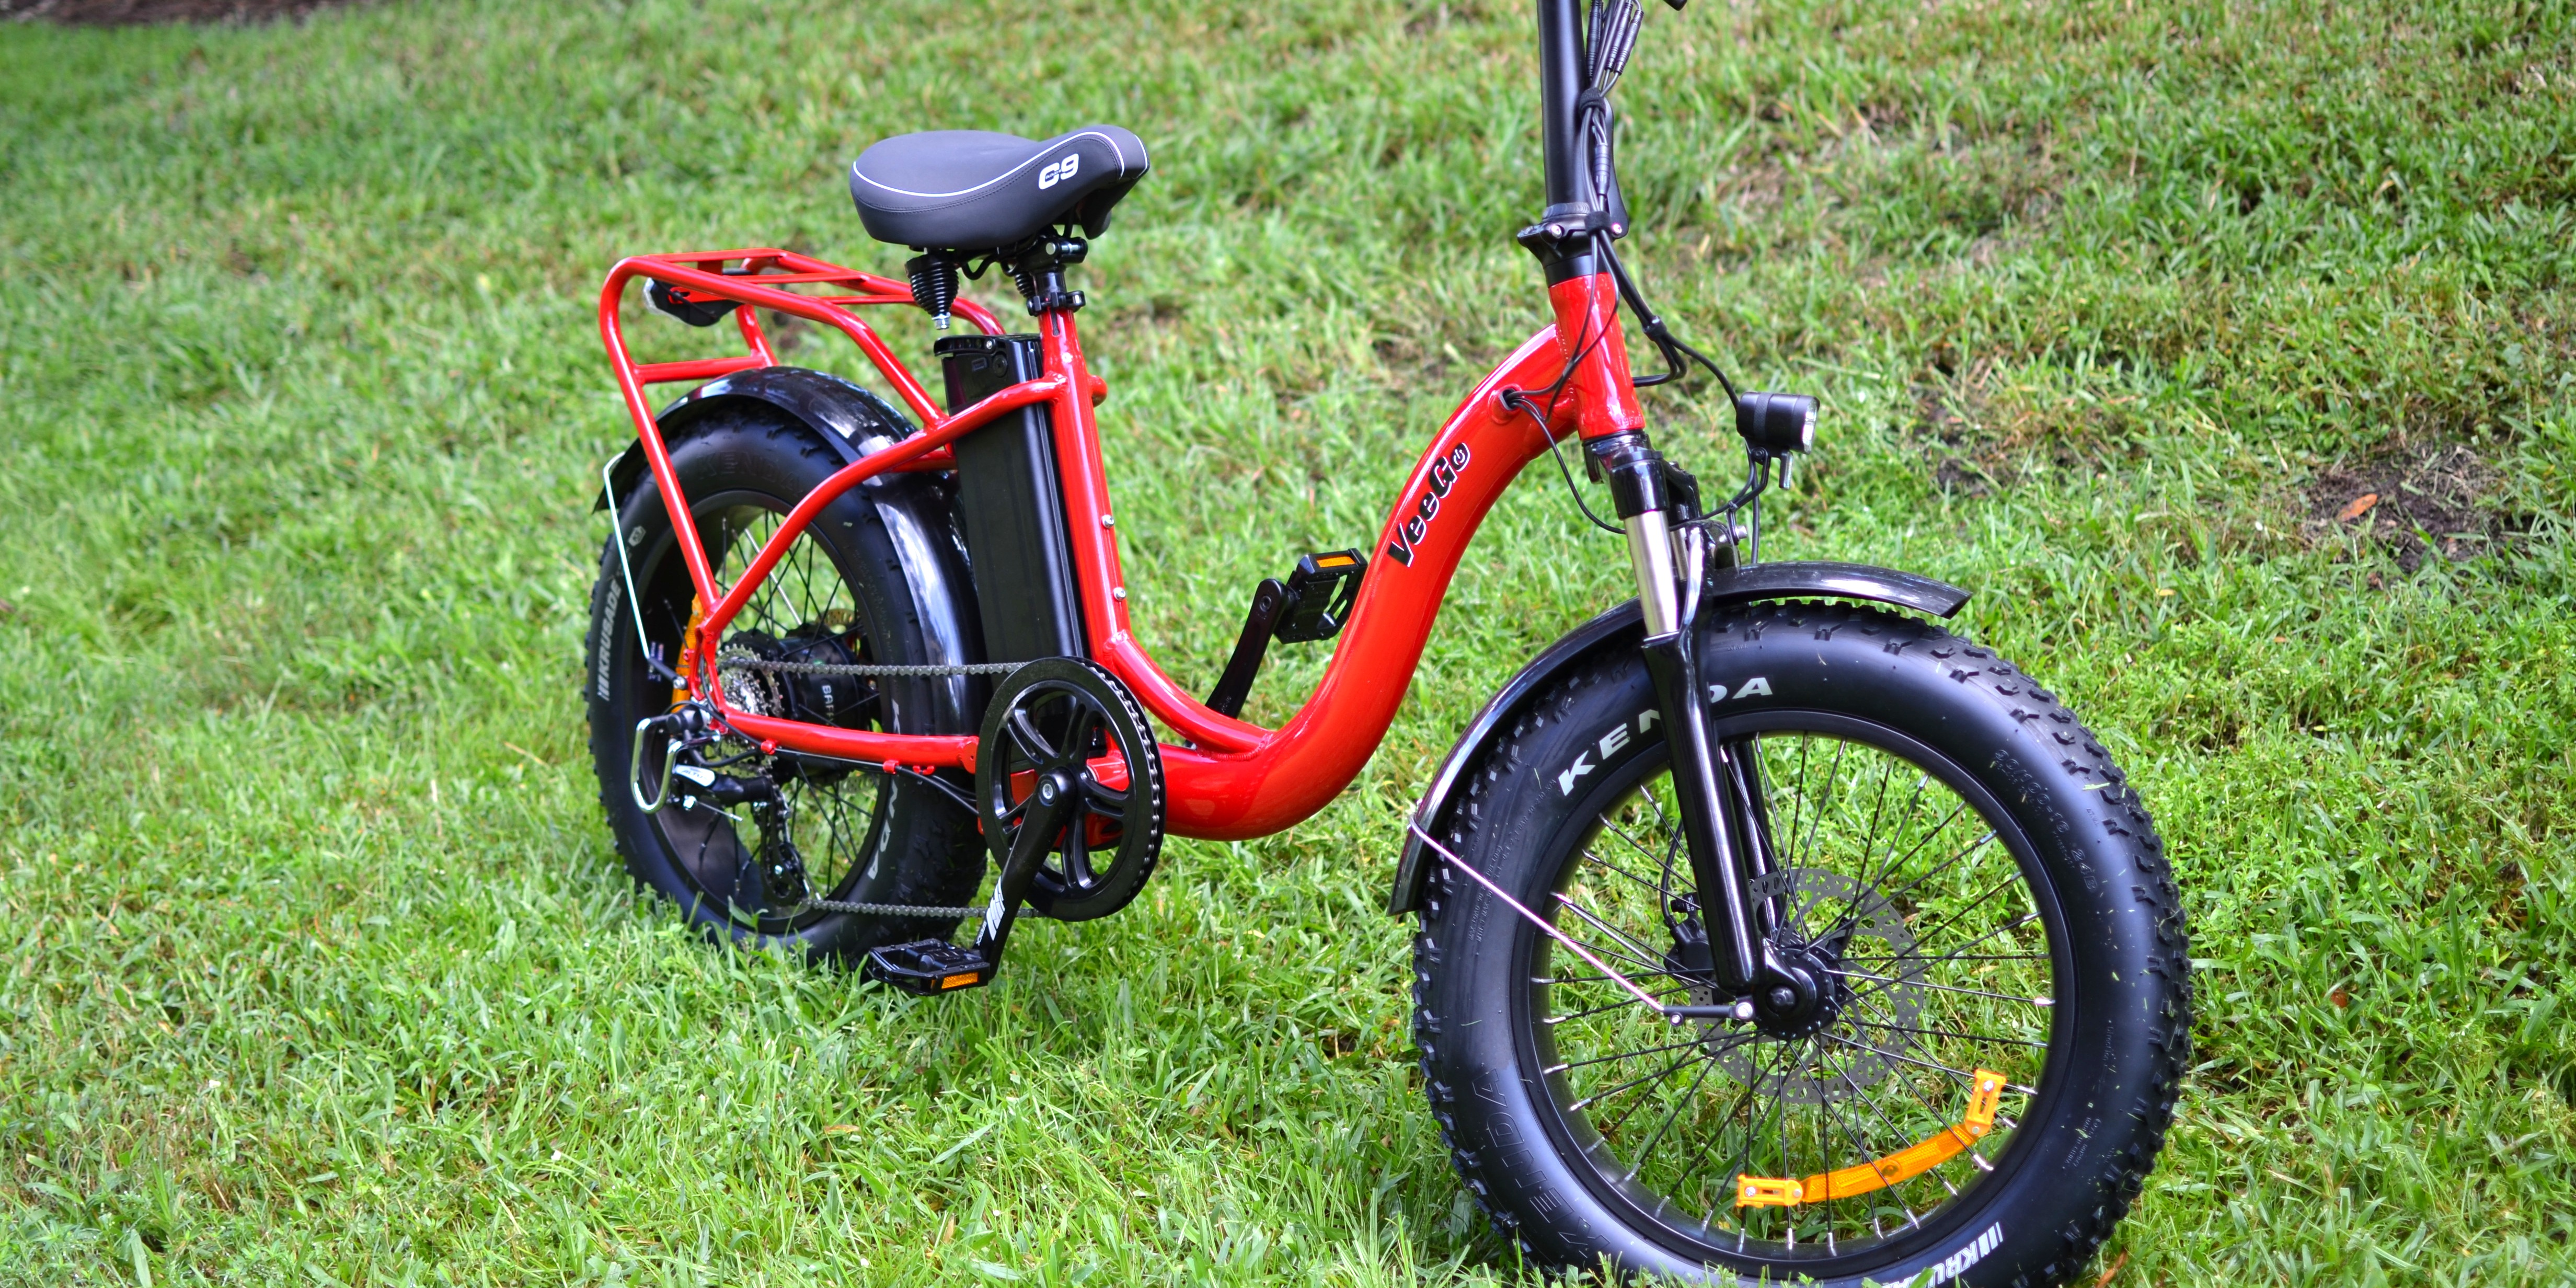 Electric Road Bike Reviews Prices Specs Videos Photos >> Veego 750 Review Ridescoozy S Fun Filled 28 Mph Fat Tire